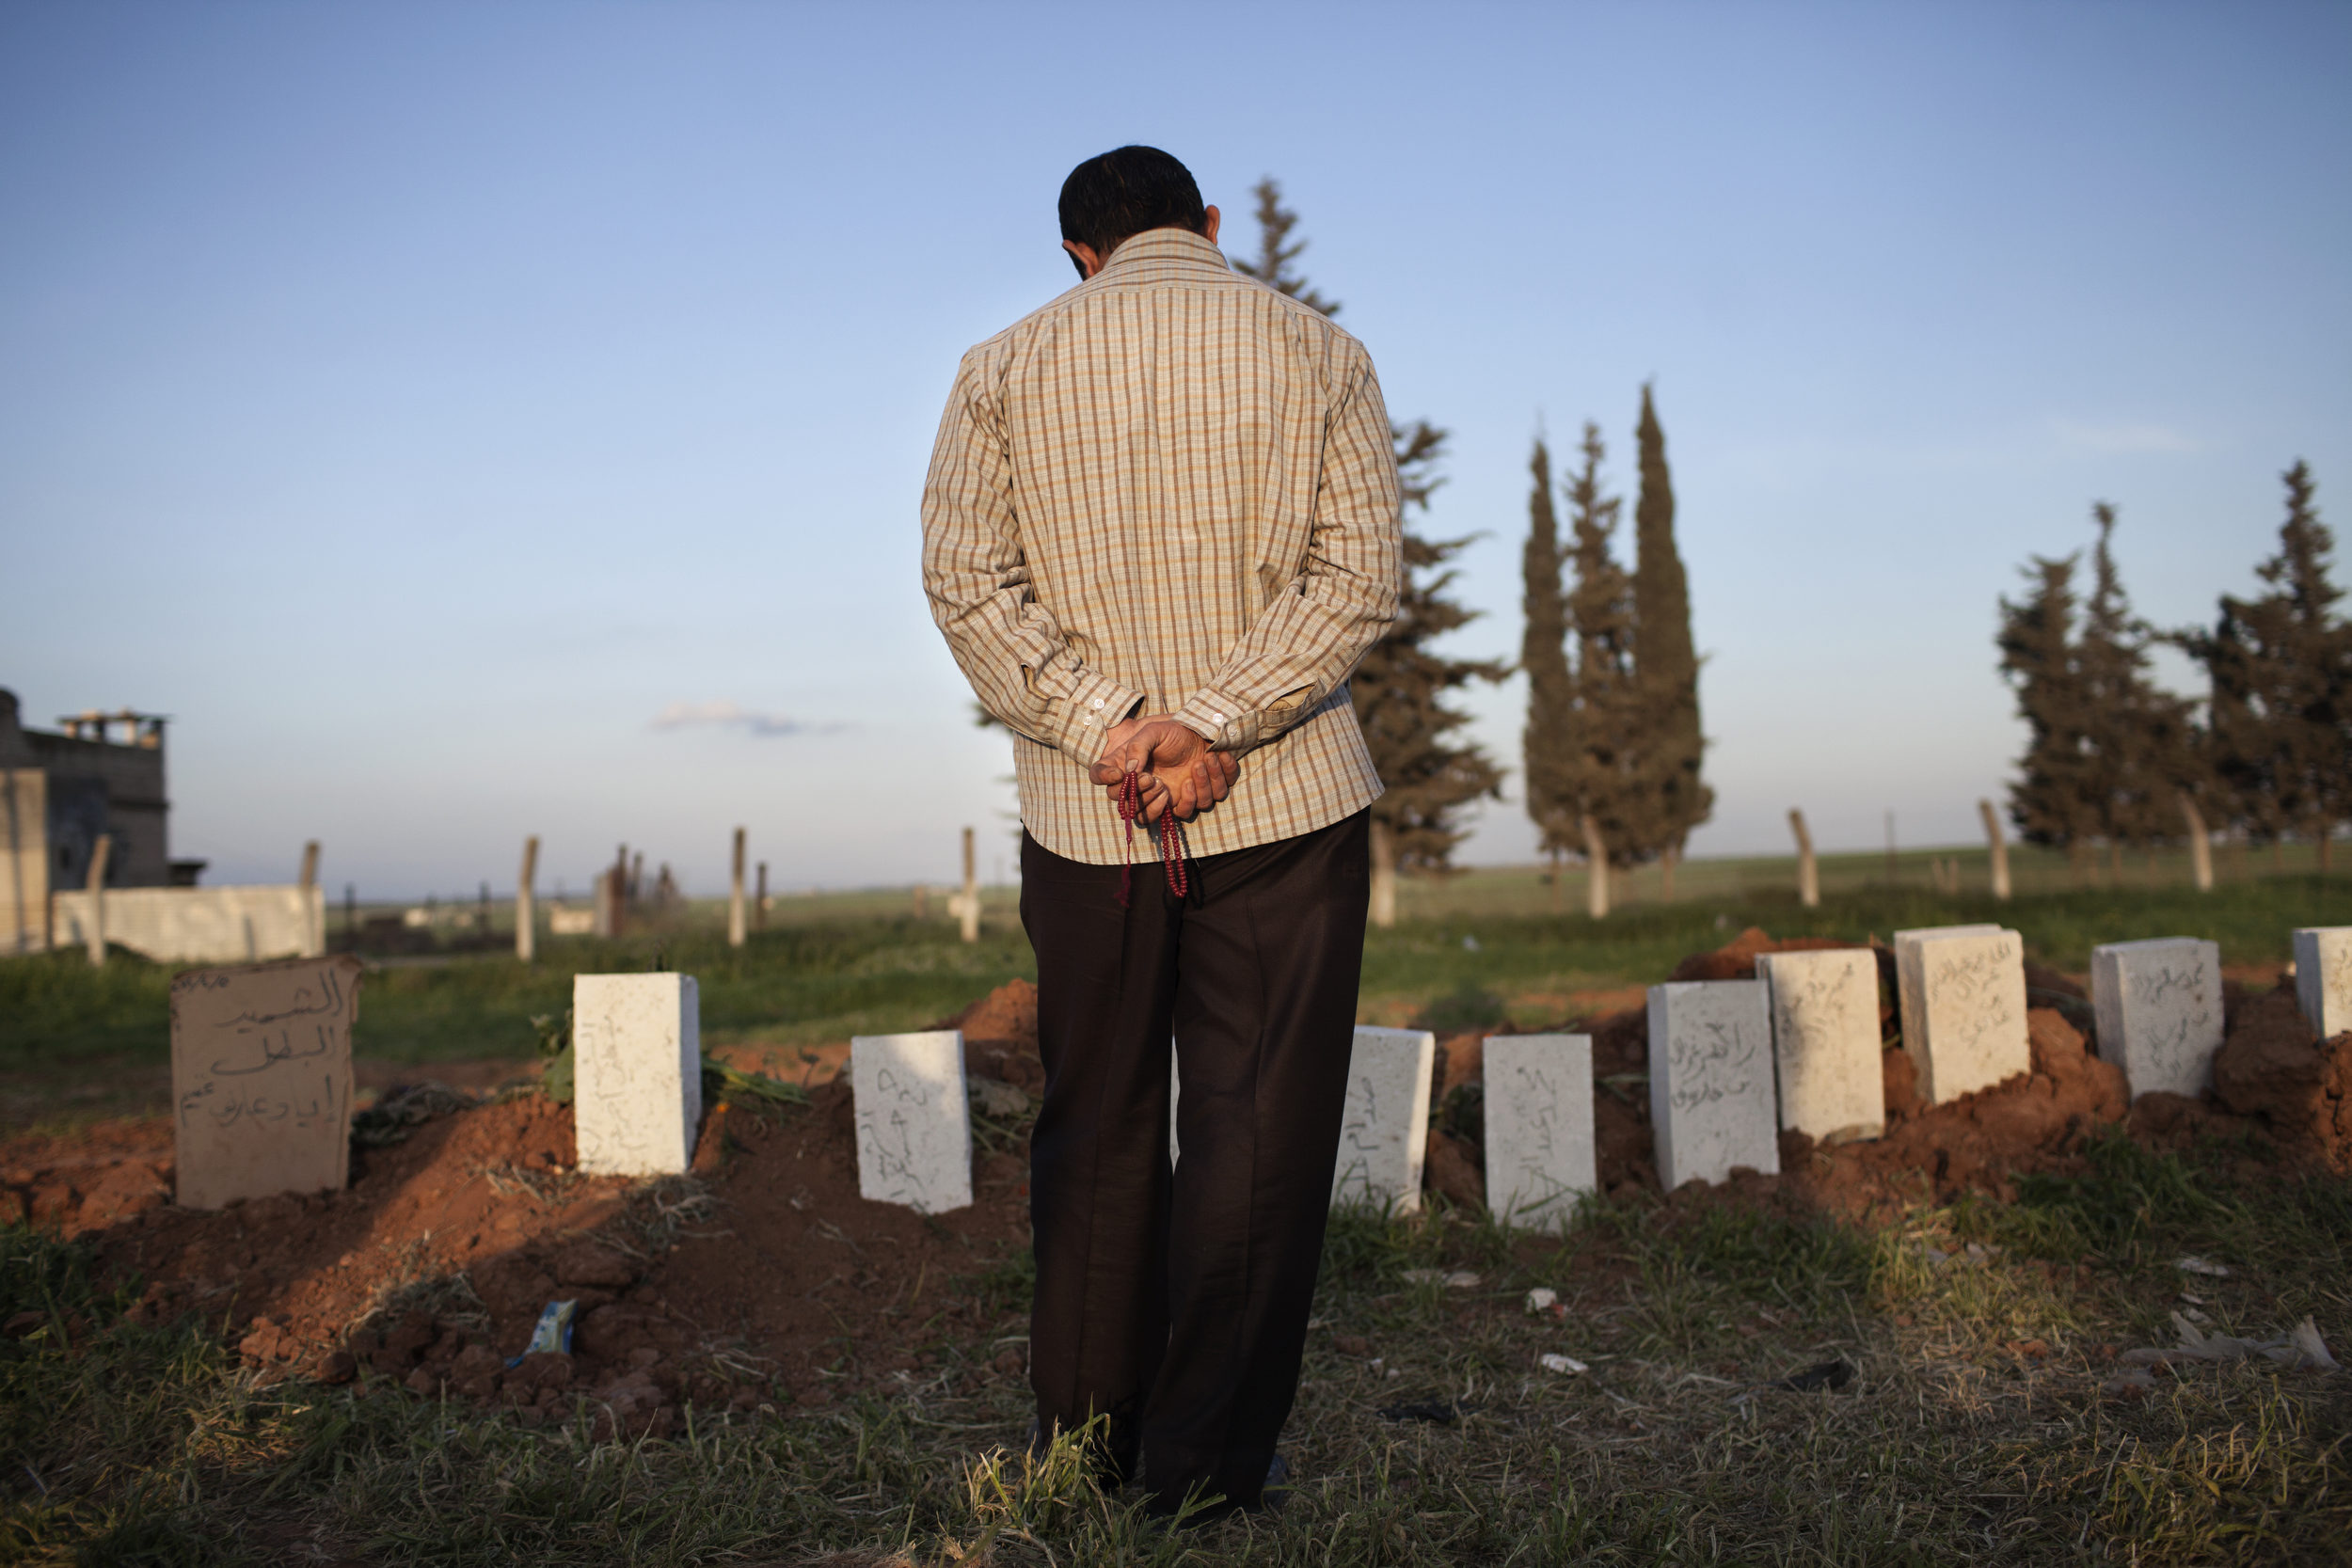 Mass grave, Taftanaz. 82 people were killed in the town by the Assad regime on April 3rd and 4th, 2012.